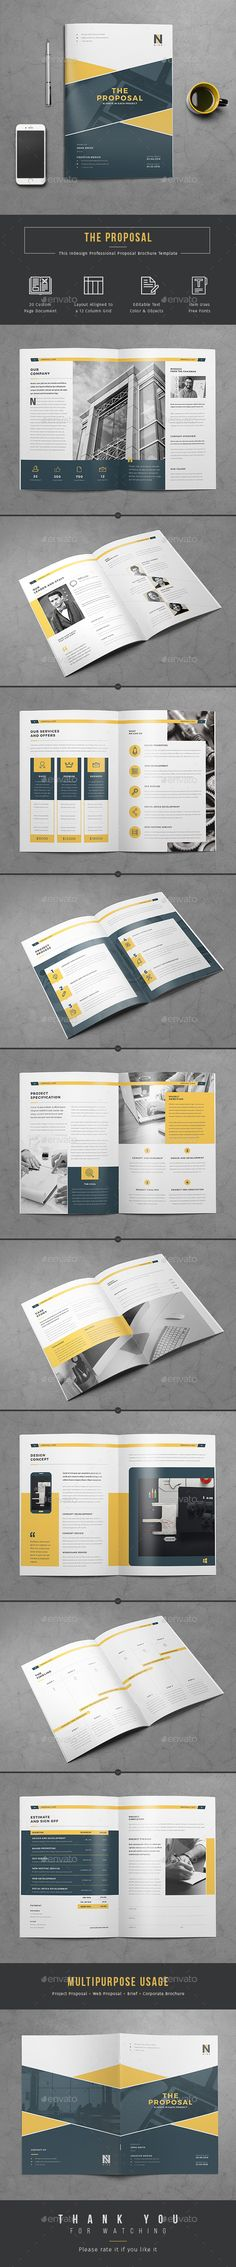 Buy Proposal by themedevisers on GraphicRiver. Proposal InDesign/Word Template Want to send a business or project proposal to prospective client? This 20 page Profe. Graphisches Design, Page Design, Book Design, Cover Design, Layout Design, Cv Inspiration, Graphic Design Inspiration, Editorial Layout, Editorial Design